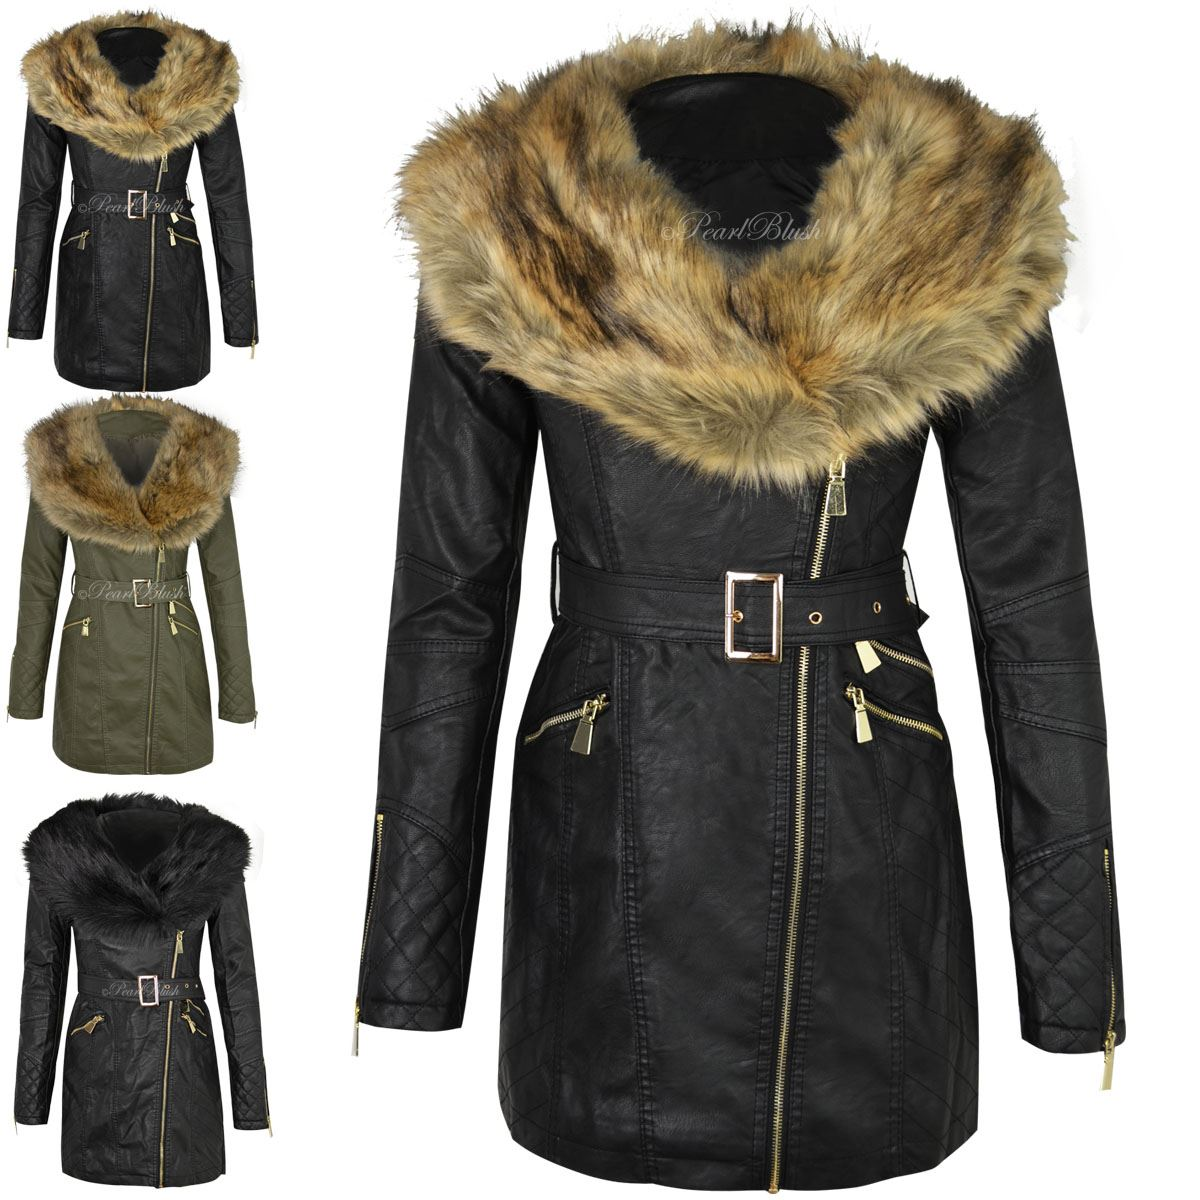 Womens leather jackets with fur collar